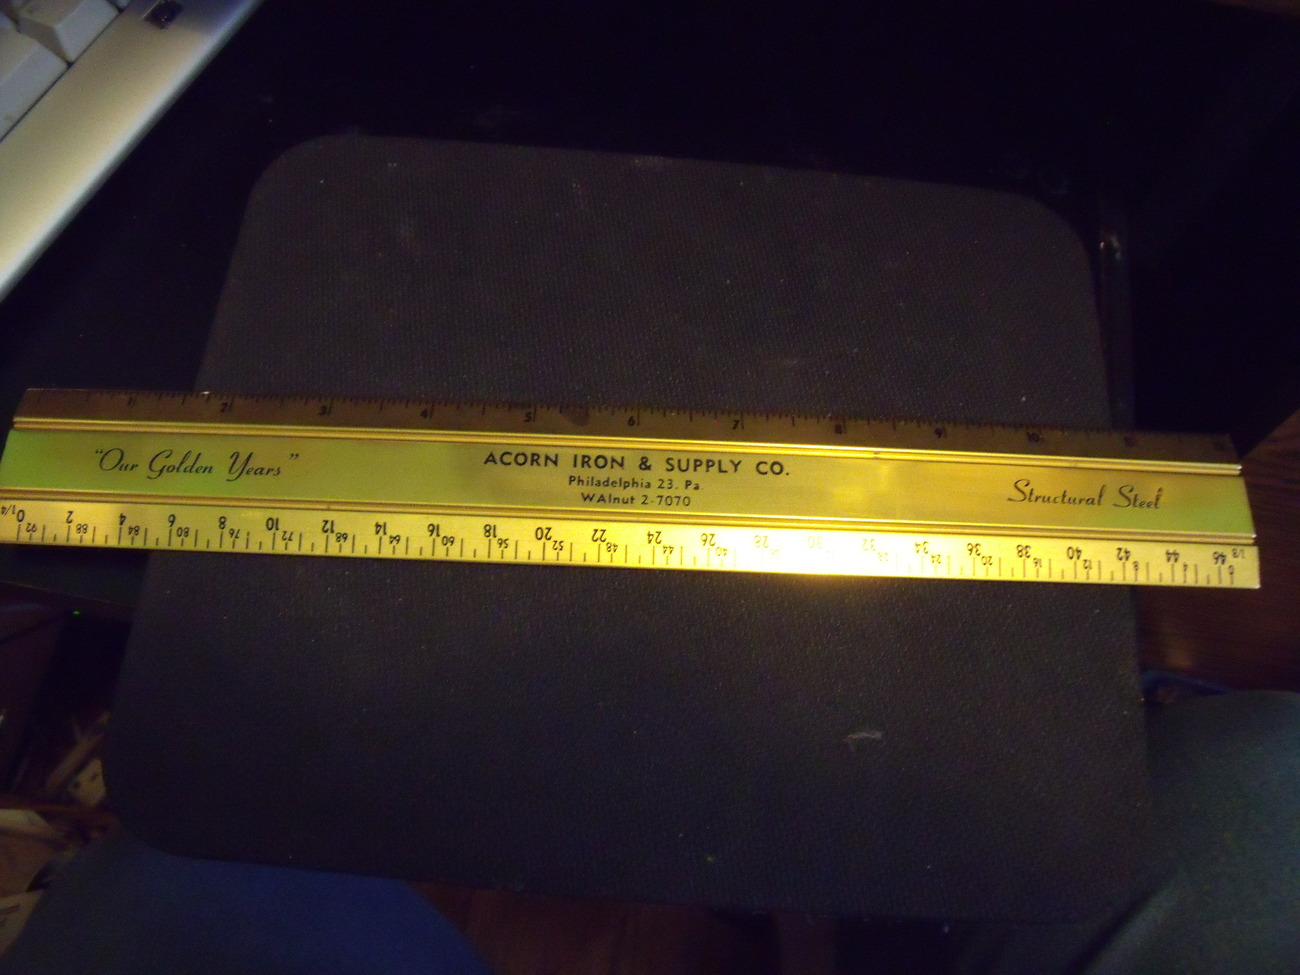 Acorn Iron & Supply Co from Philadelphia Vintage metal Ruler